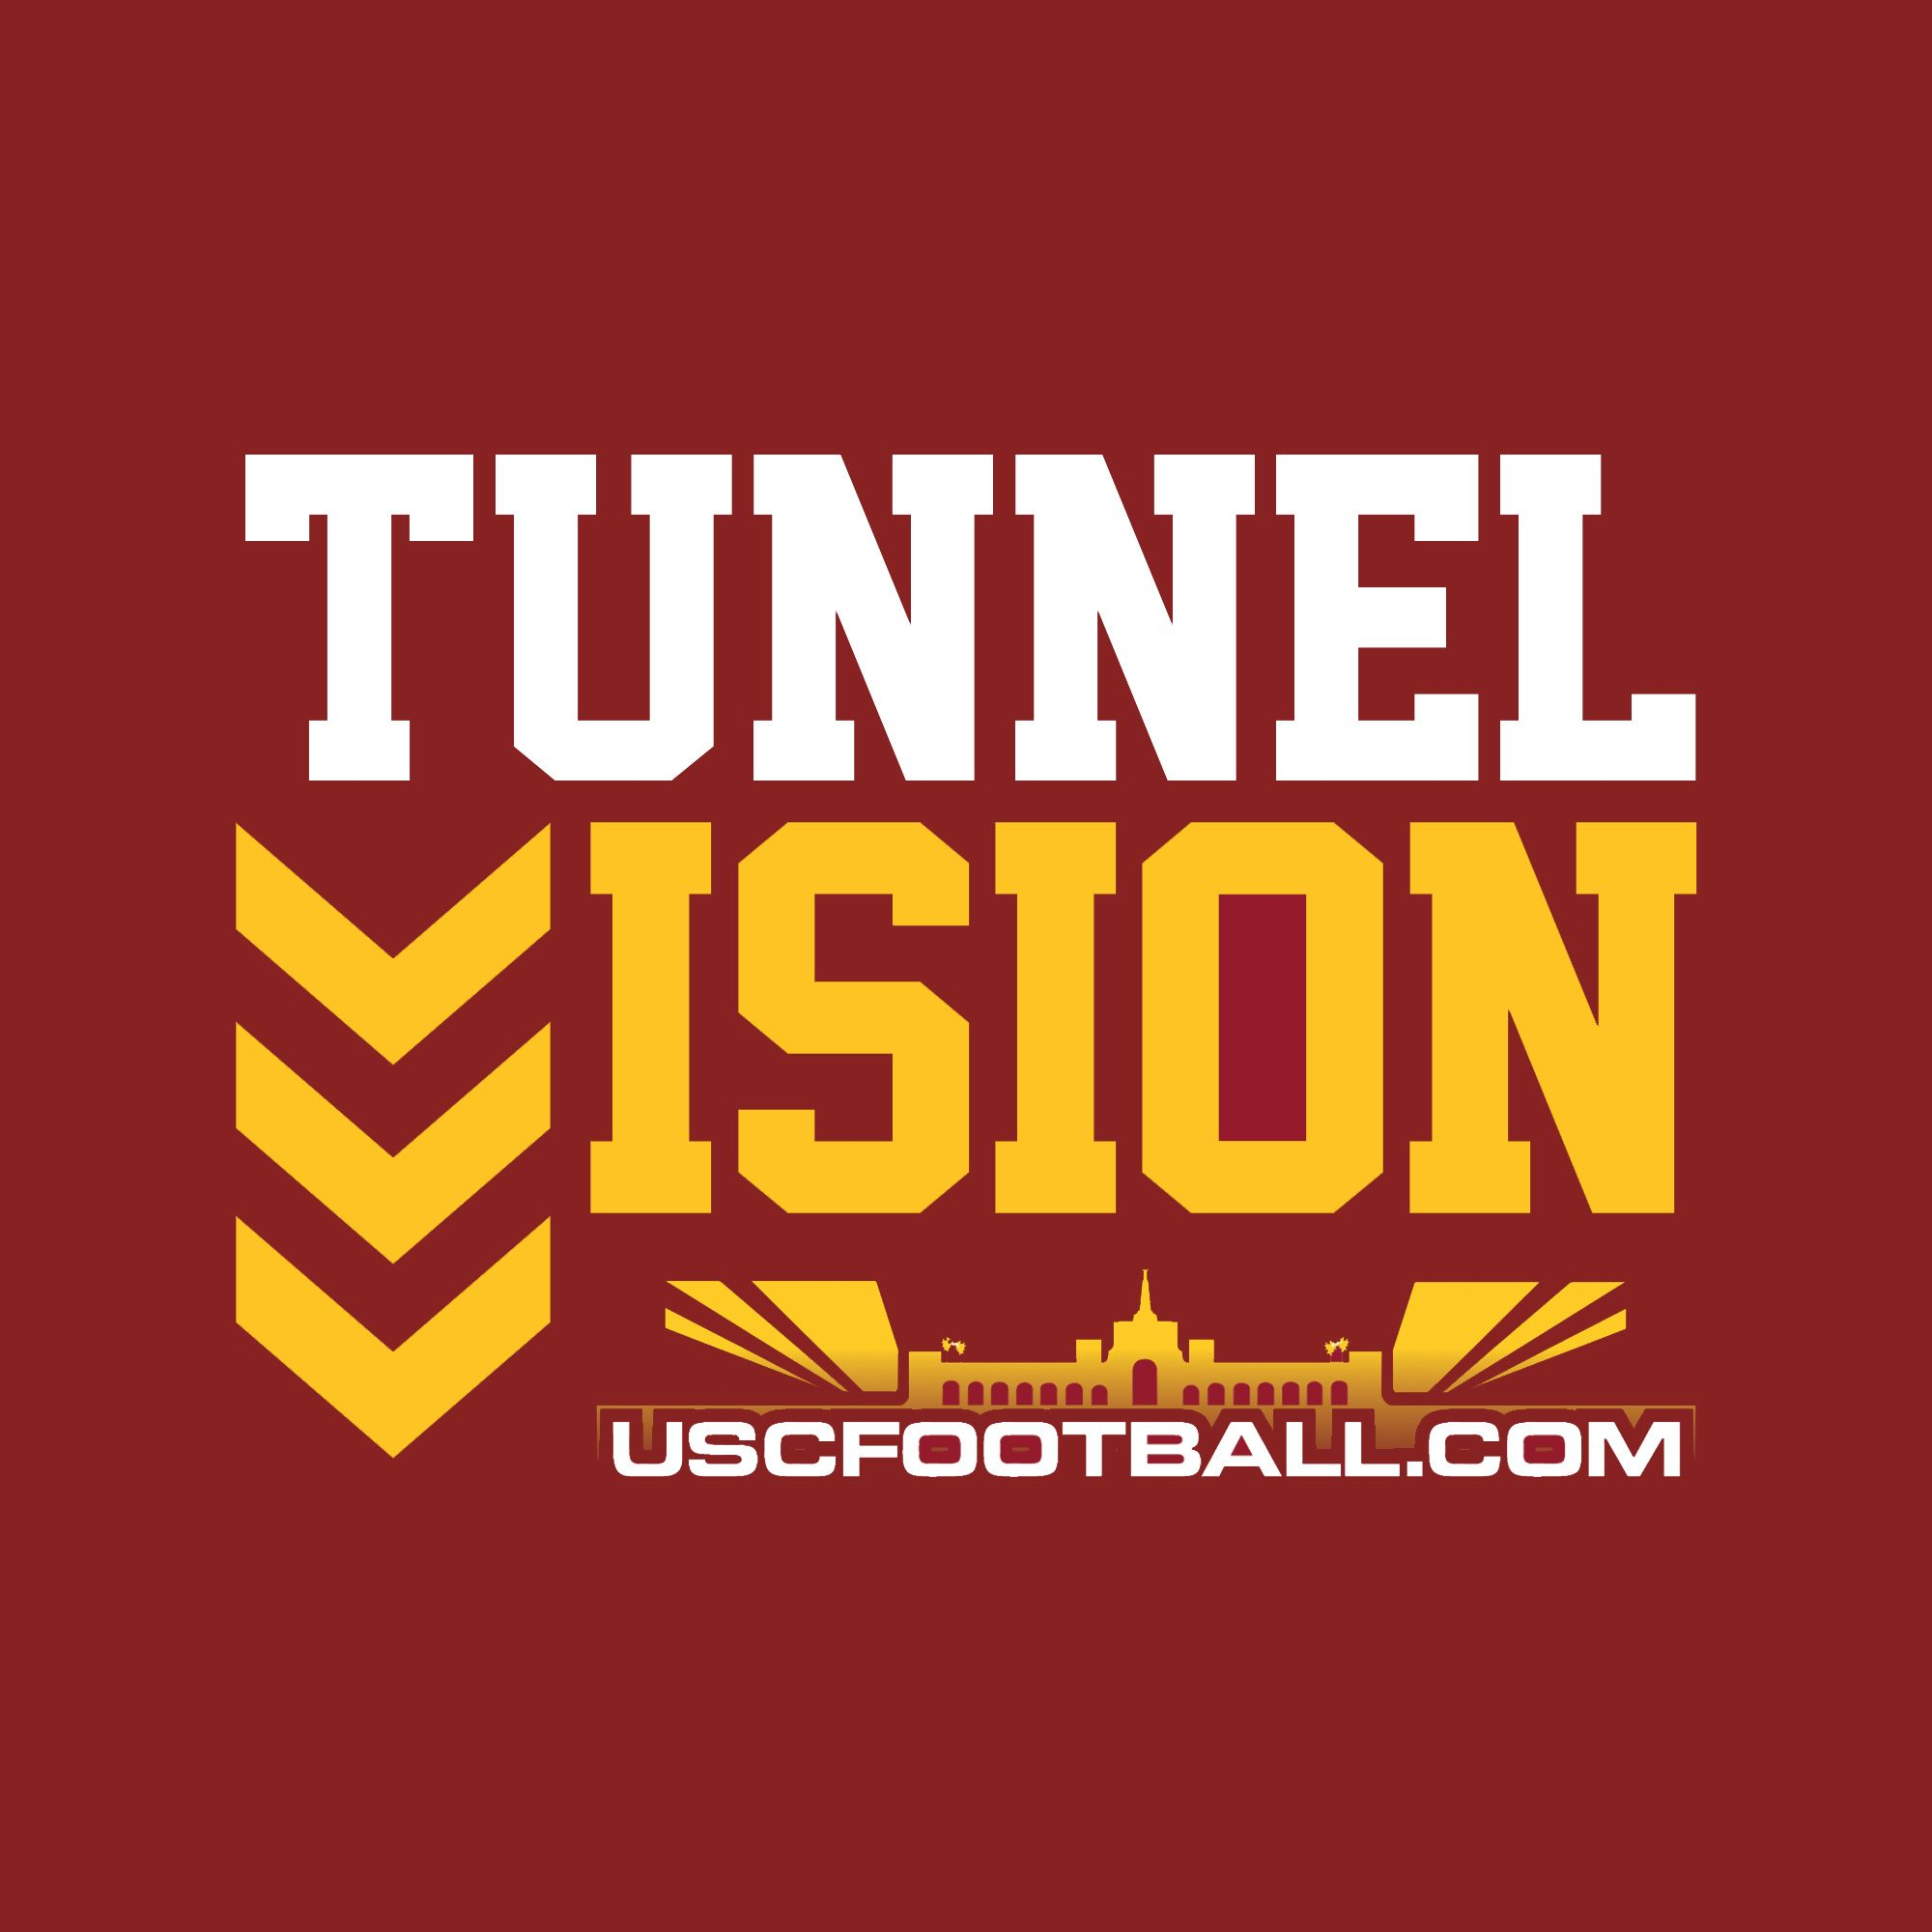 Lunch with a Trojan - New USC defensive line coach Vic So'oto